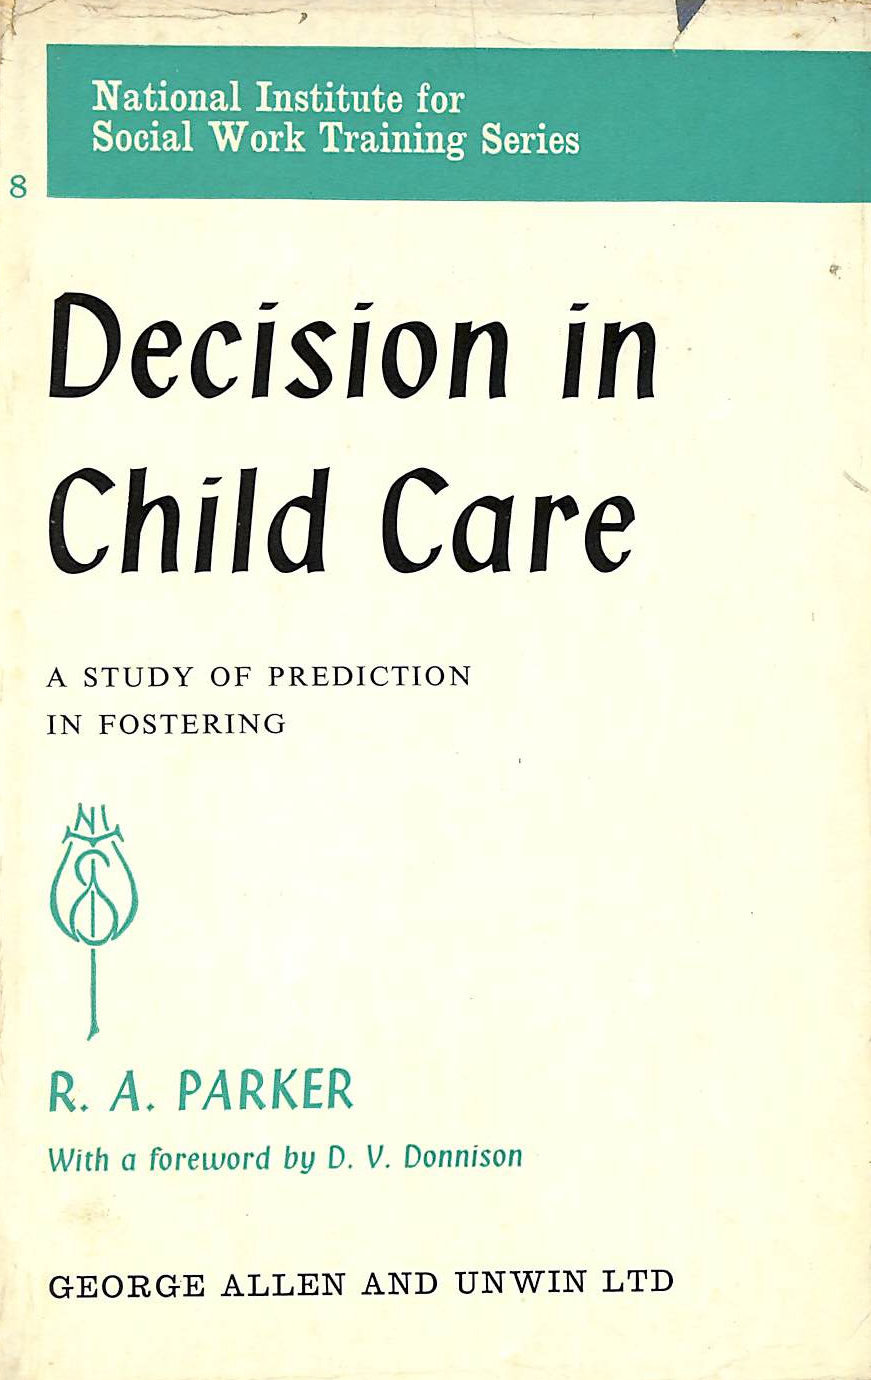 Image for Decision in Child Care (National Institute Social Services Library)